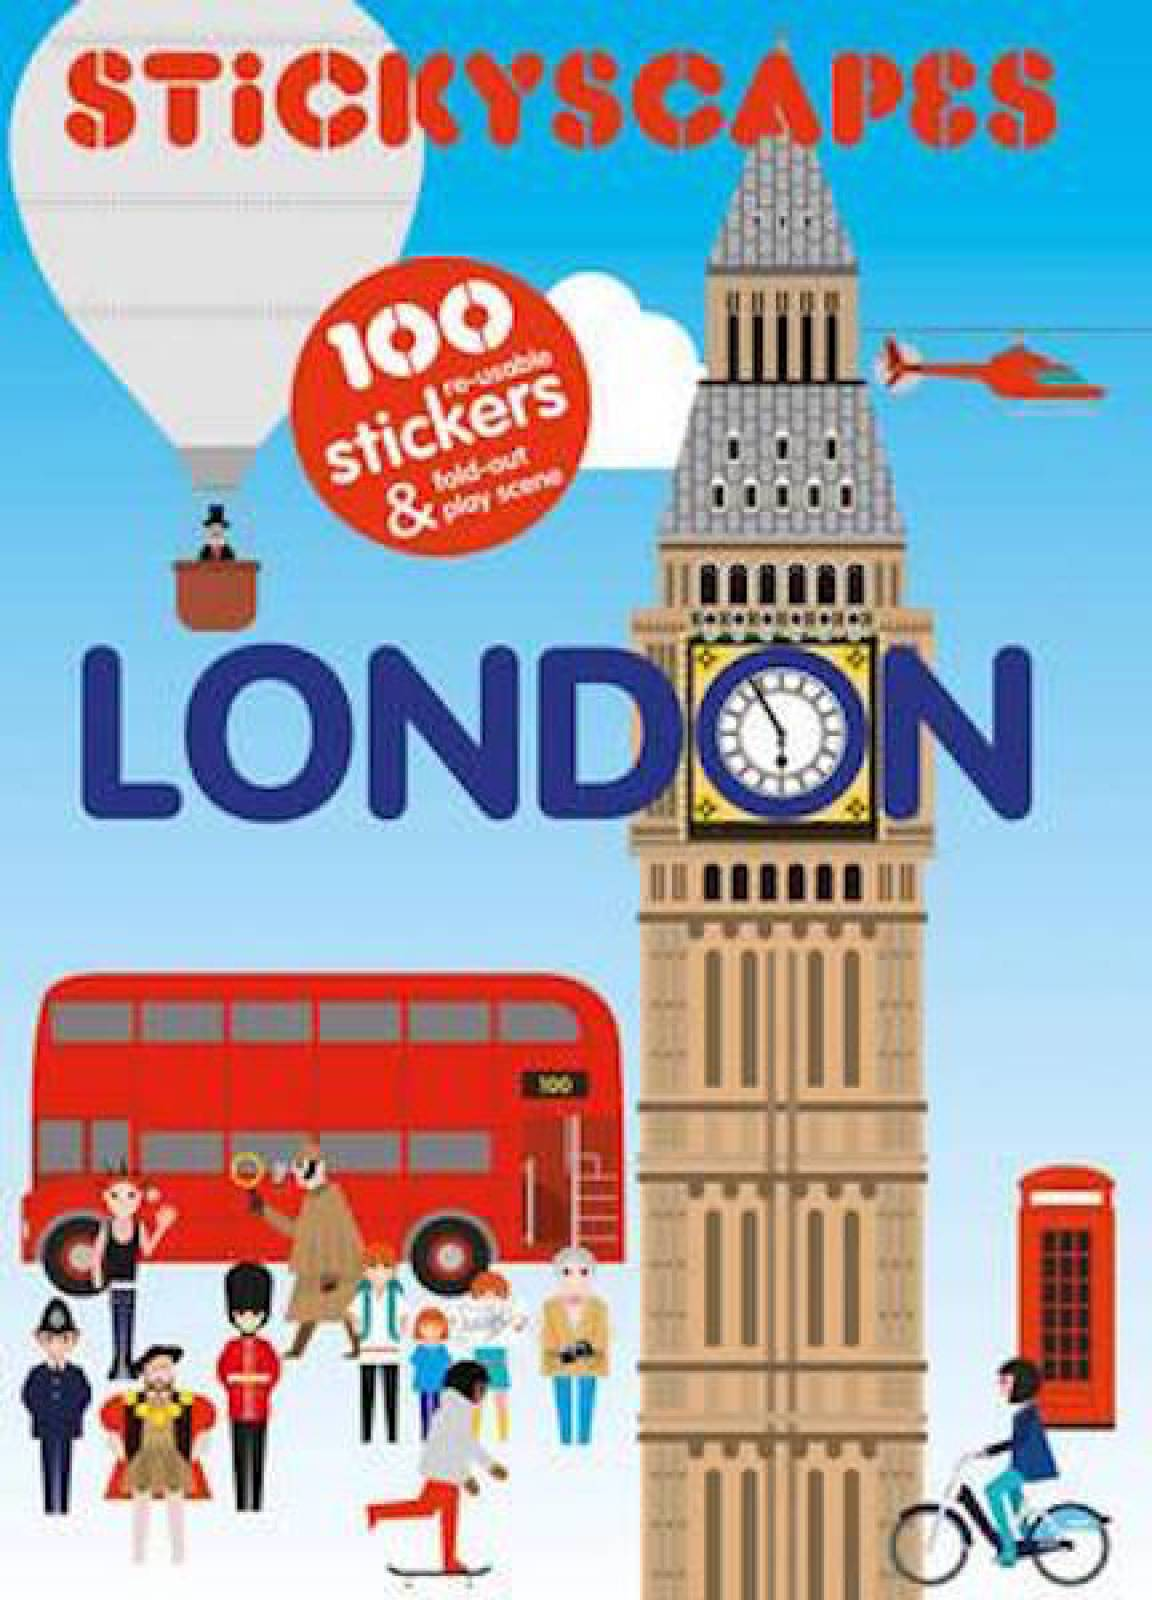 Stickyscapes: London Sticker Book thumbnails